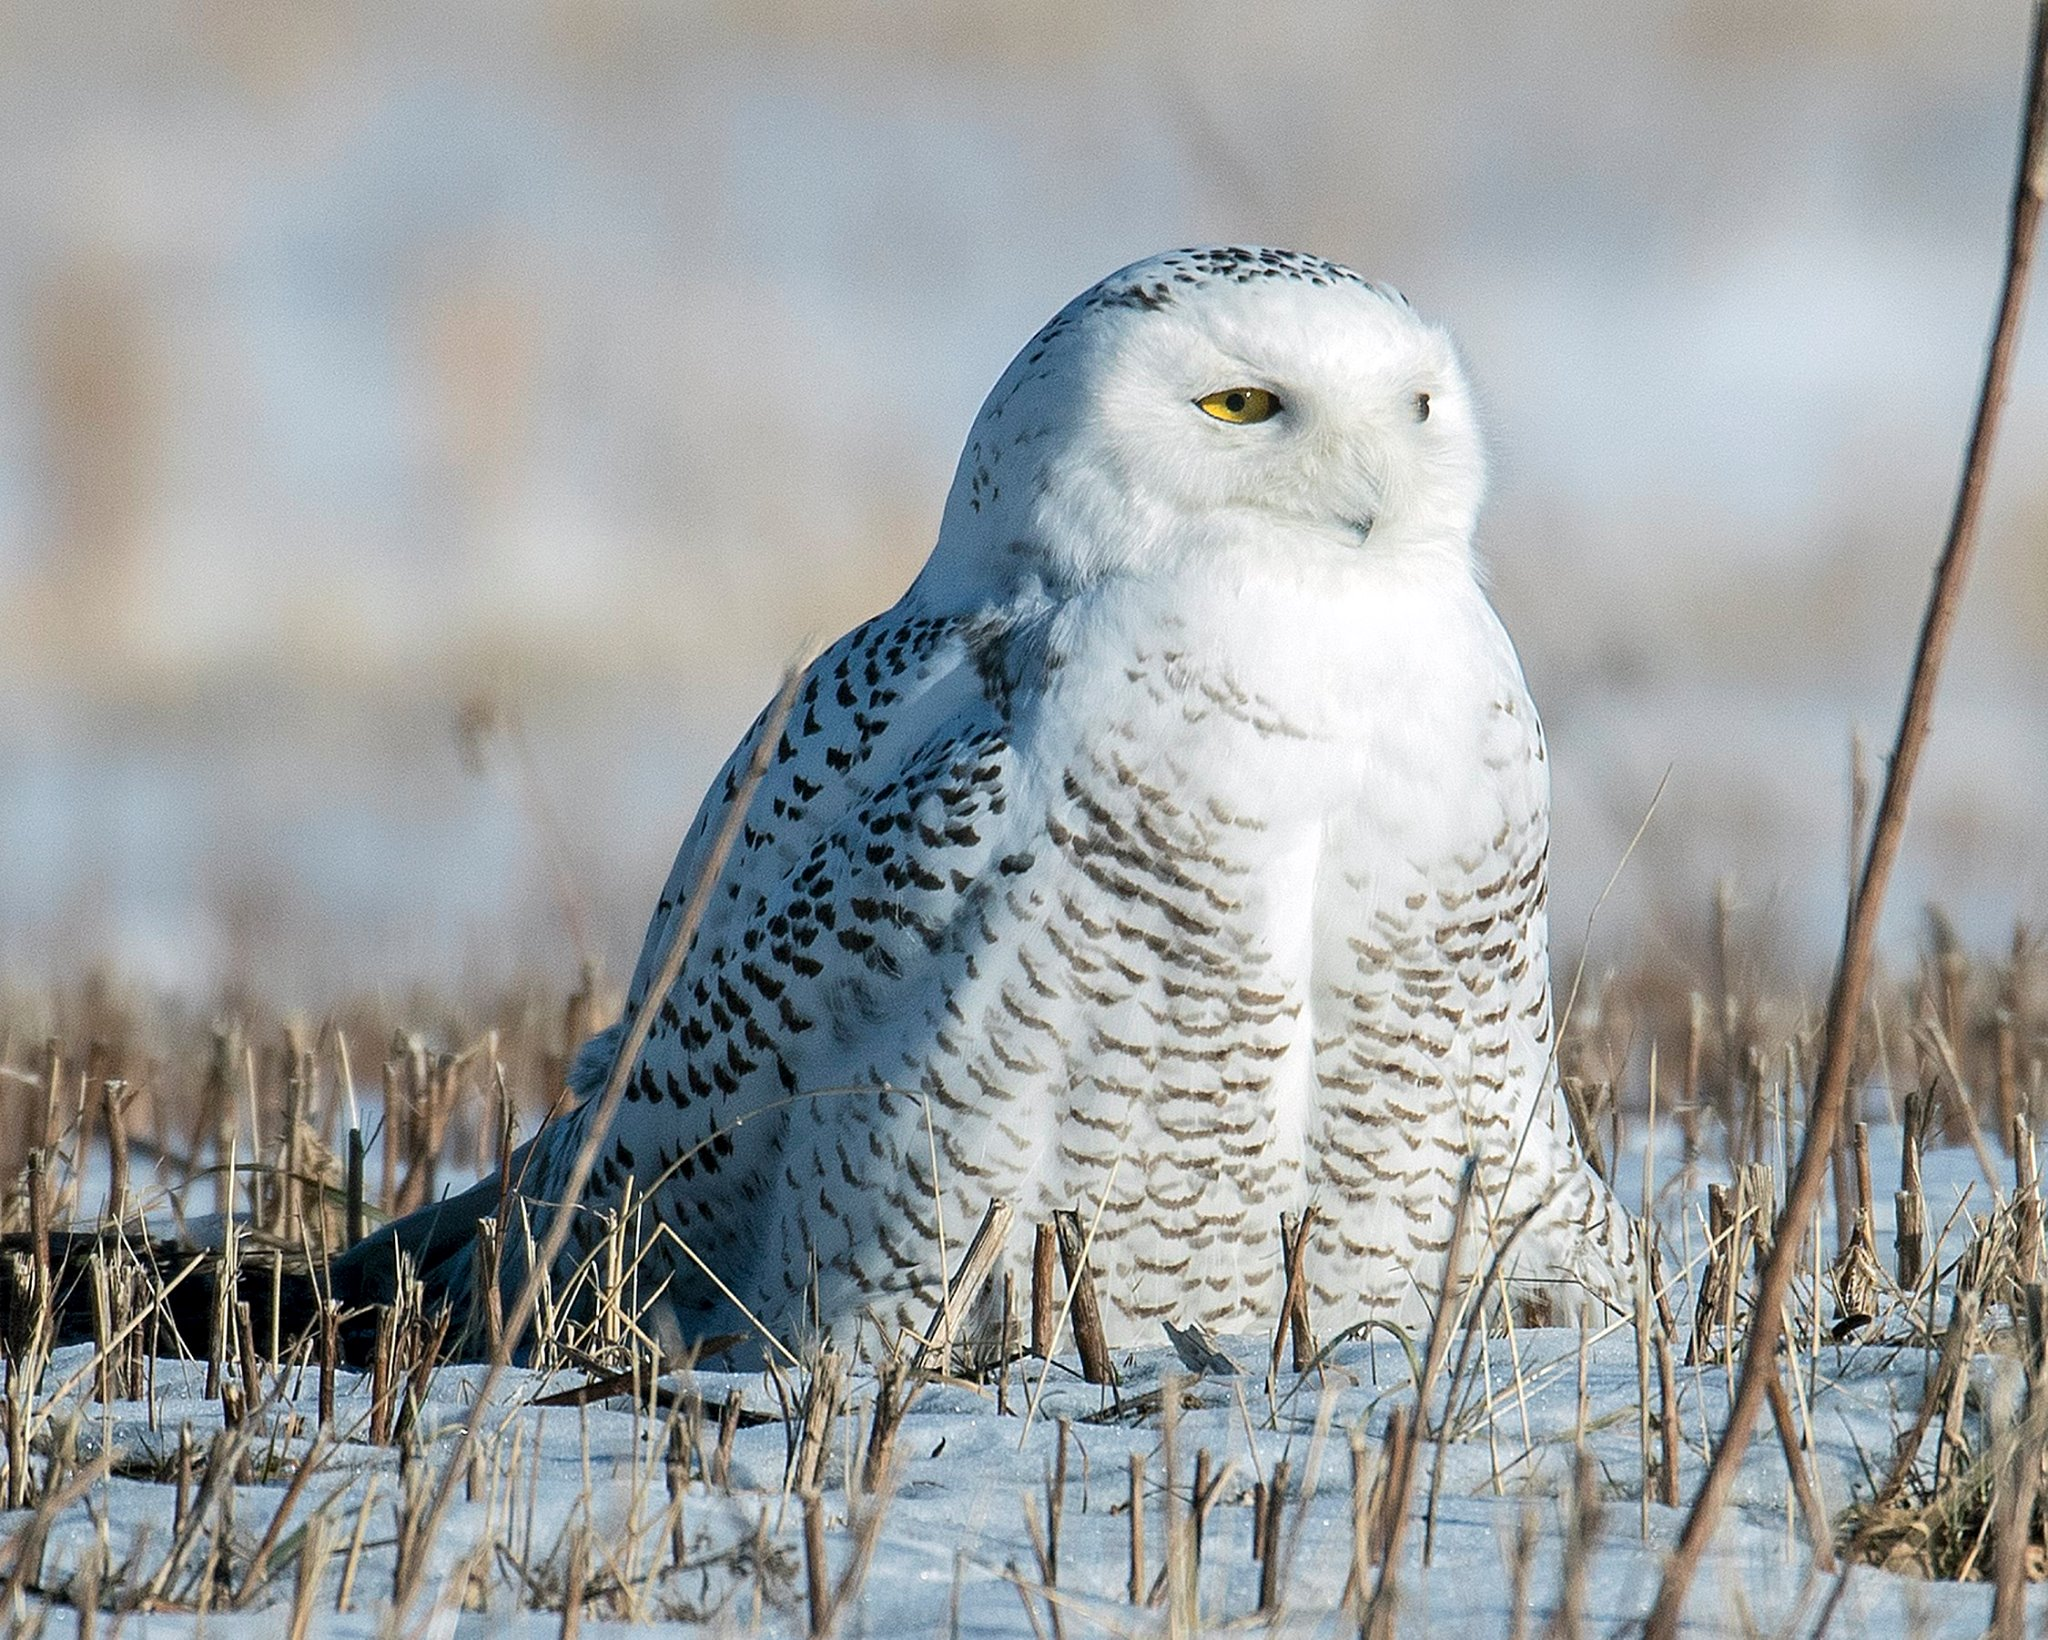 EVERY YEAR SNOWY OWLS DIE FROM TOO MUCH LOVE. THE FRIENDS OF THE WASHINGTON COUNTY GRASSLANDS, FORT EDWARD, NEW YORK SENt THIS WARNING. IMAGE: K. ROHLING THANKS TO THE FRIENDS OF THE WASHINGTON COUNTY GRASSLANDS